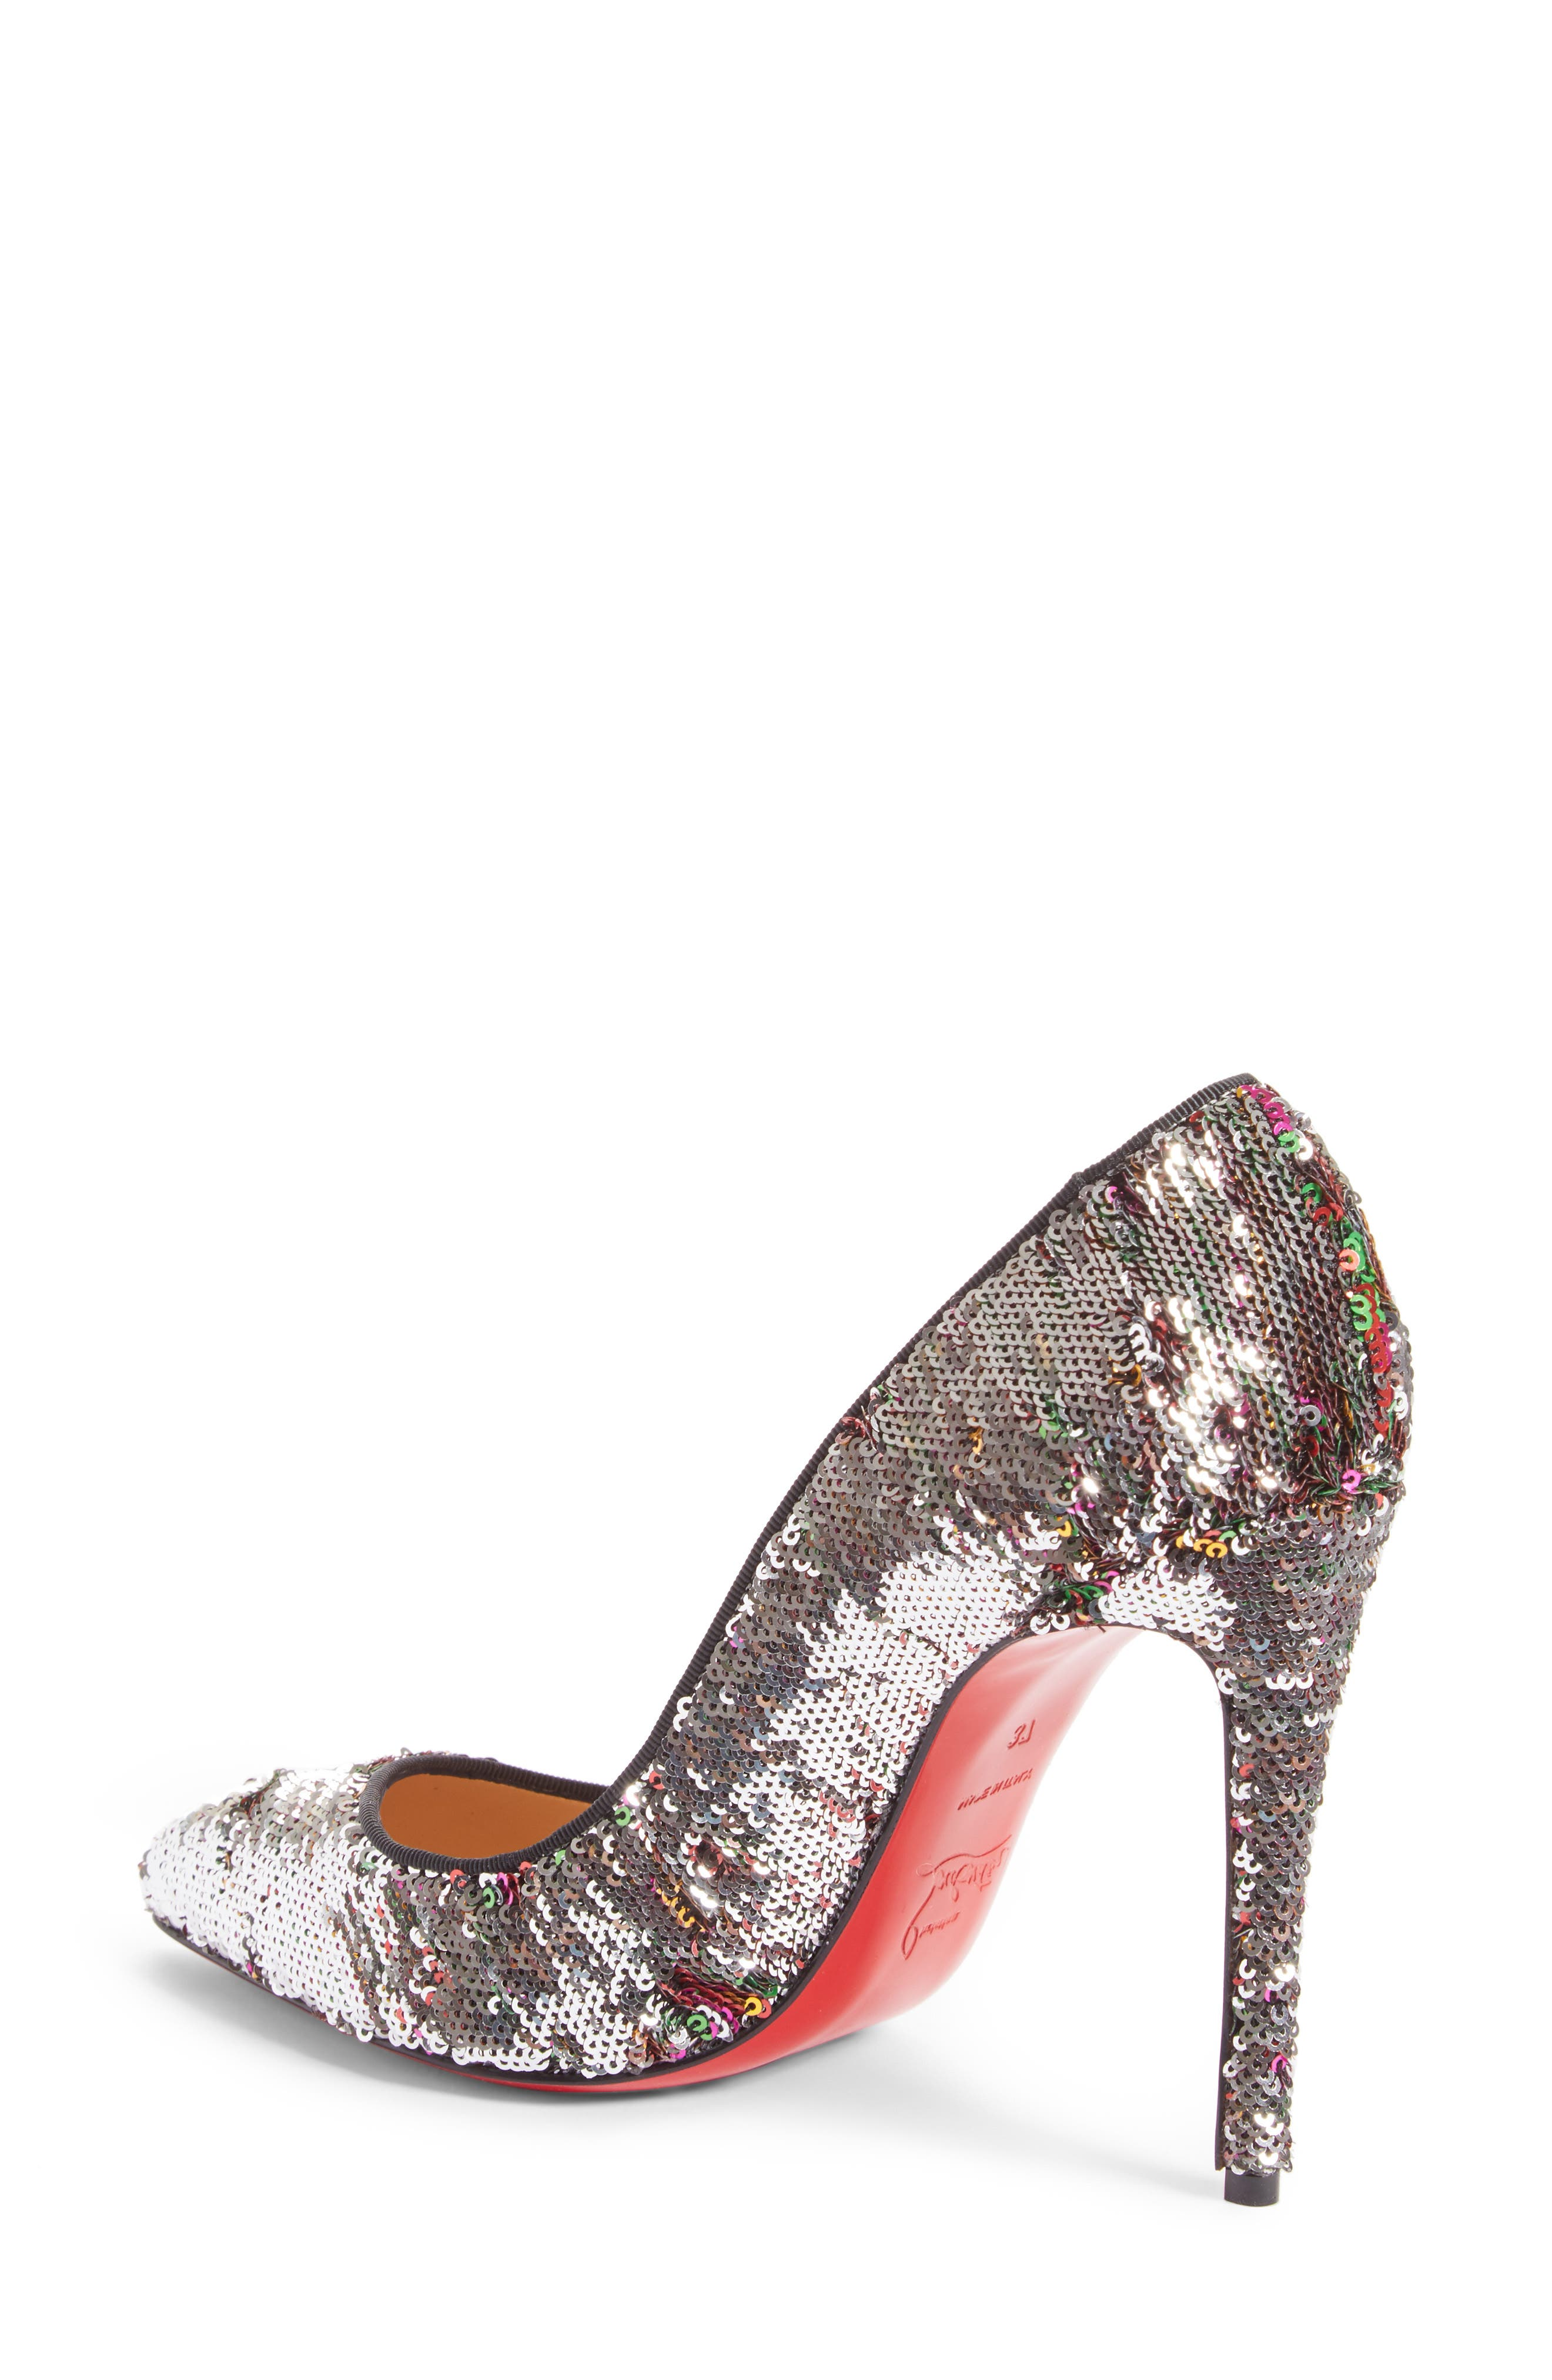 Pigalle Follies Sequin Pointy Toe Pump,                             Alternate thumbnail 2, color,                             Silver Sequin